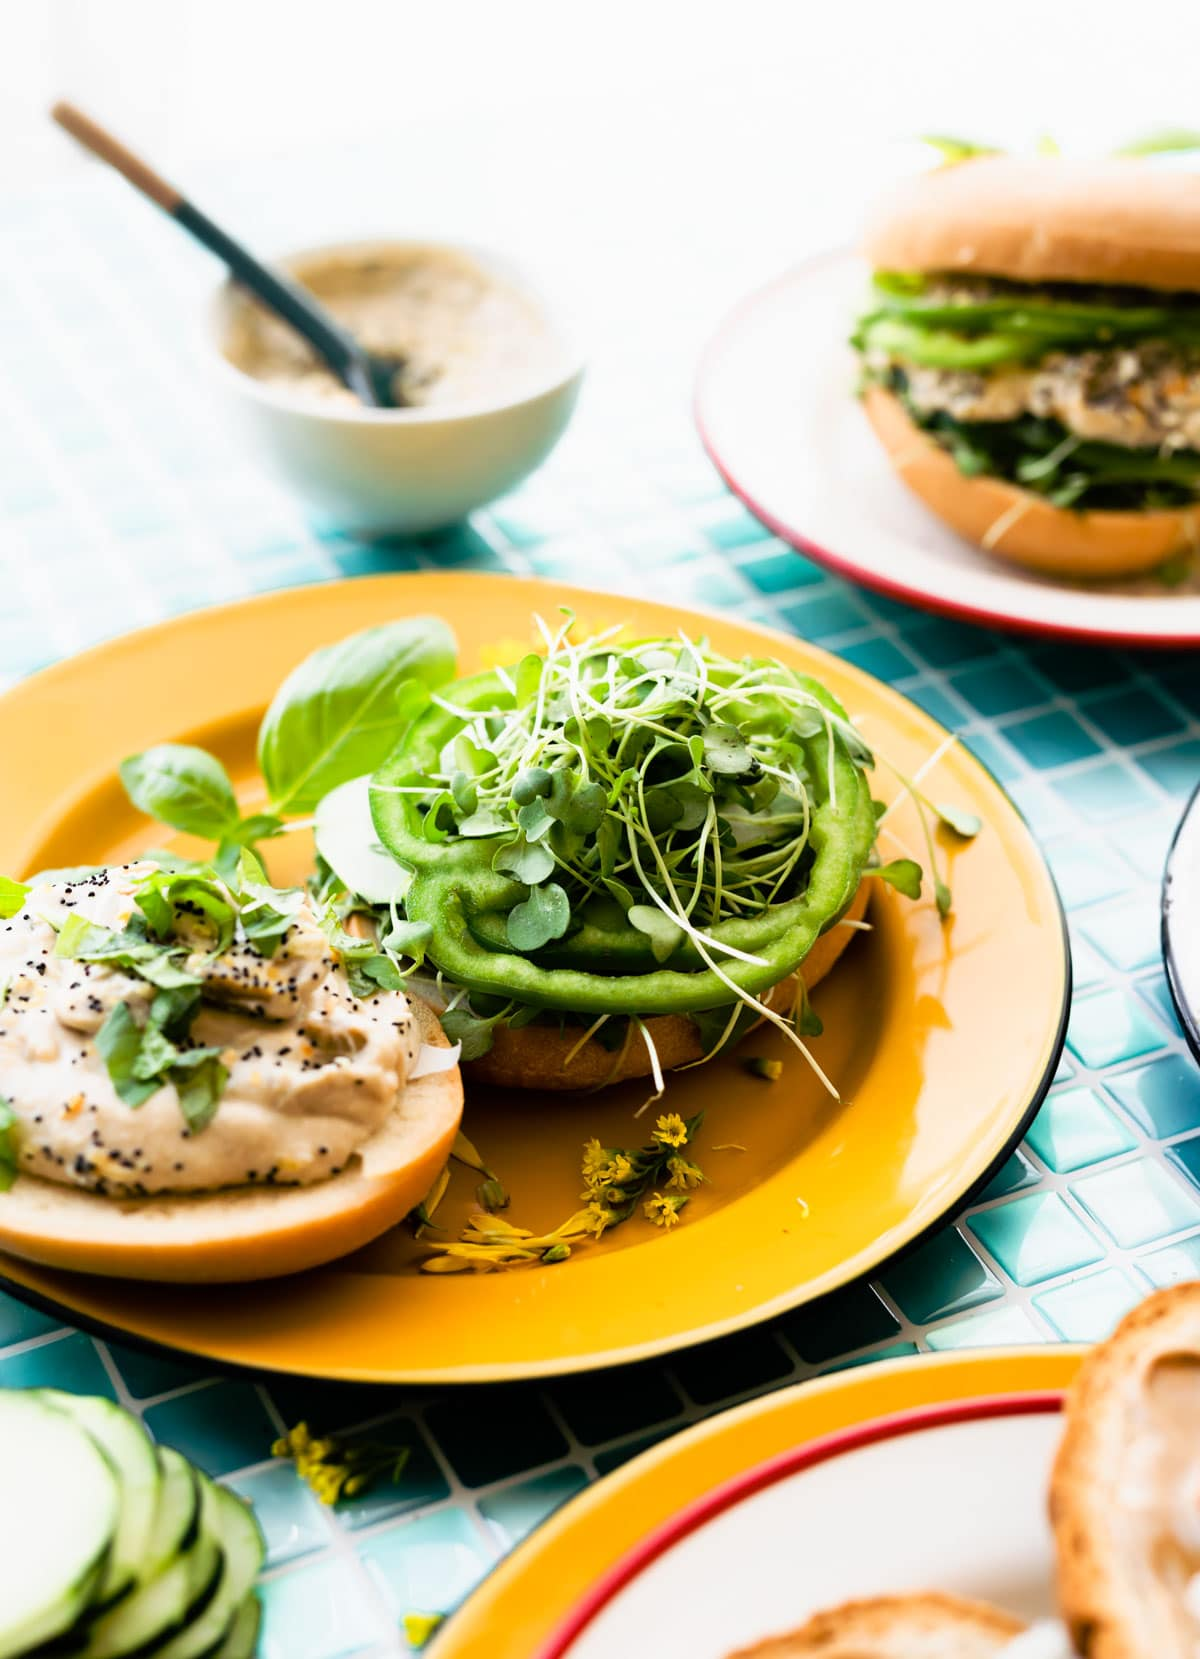 gluten free bagel on yellow plate topped with healthy green ingredients